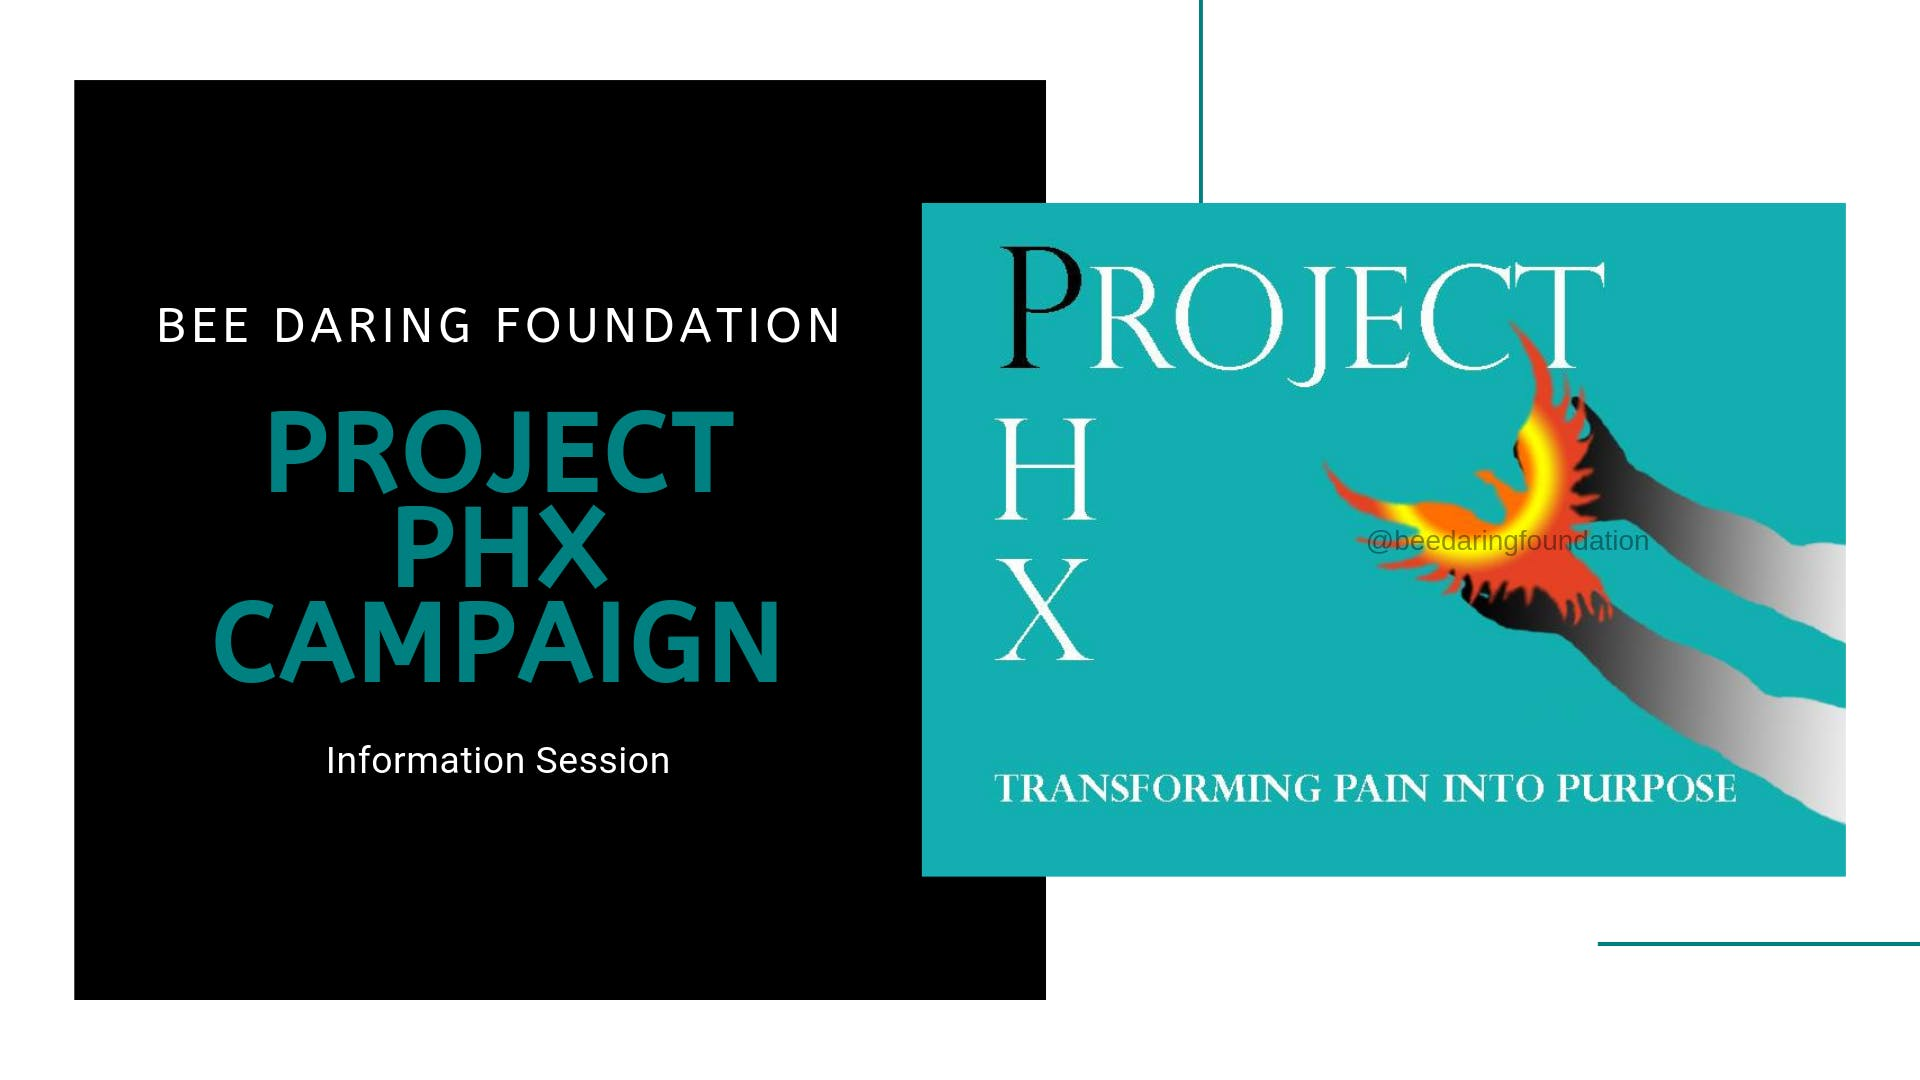 Project PHX Information Session